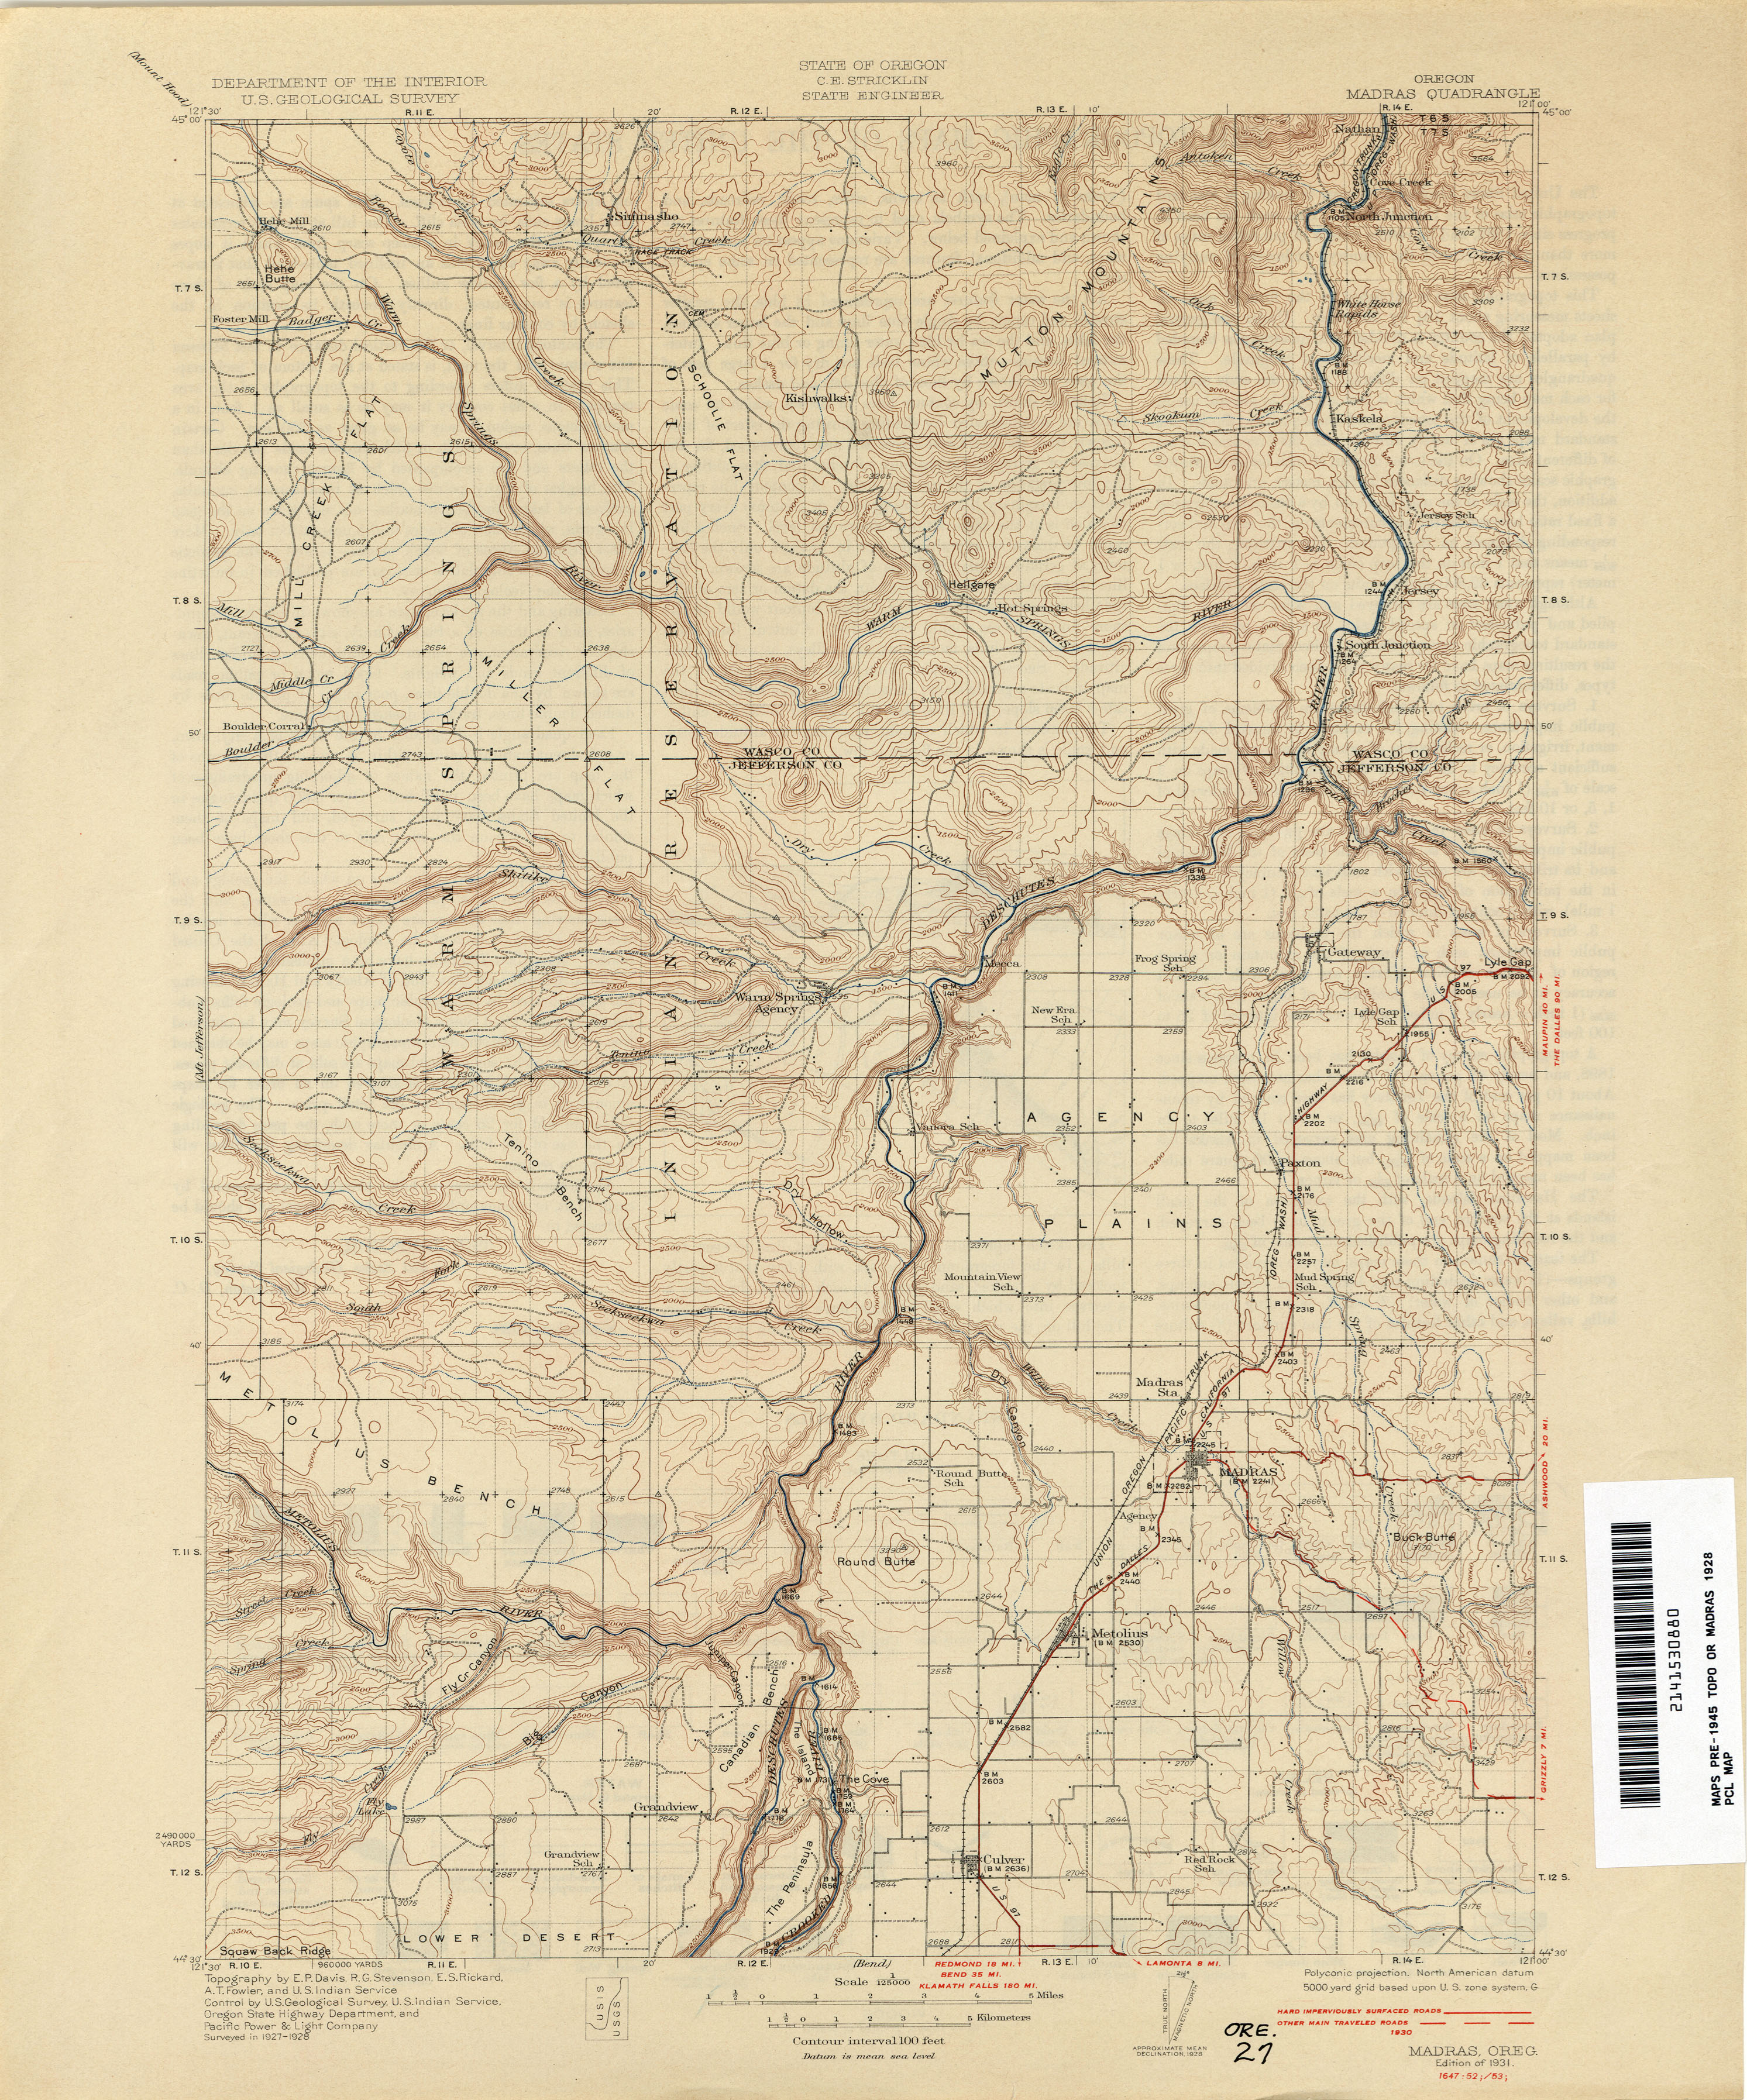 Oregon Historical Topographic Maps - Perry-Castañeda Map